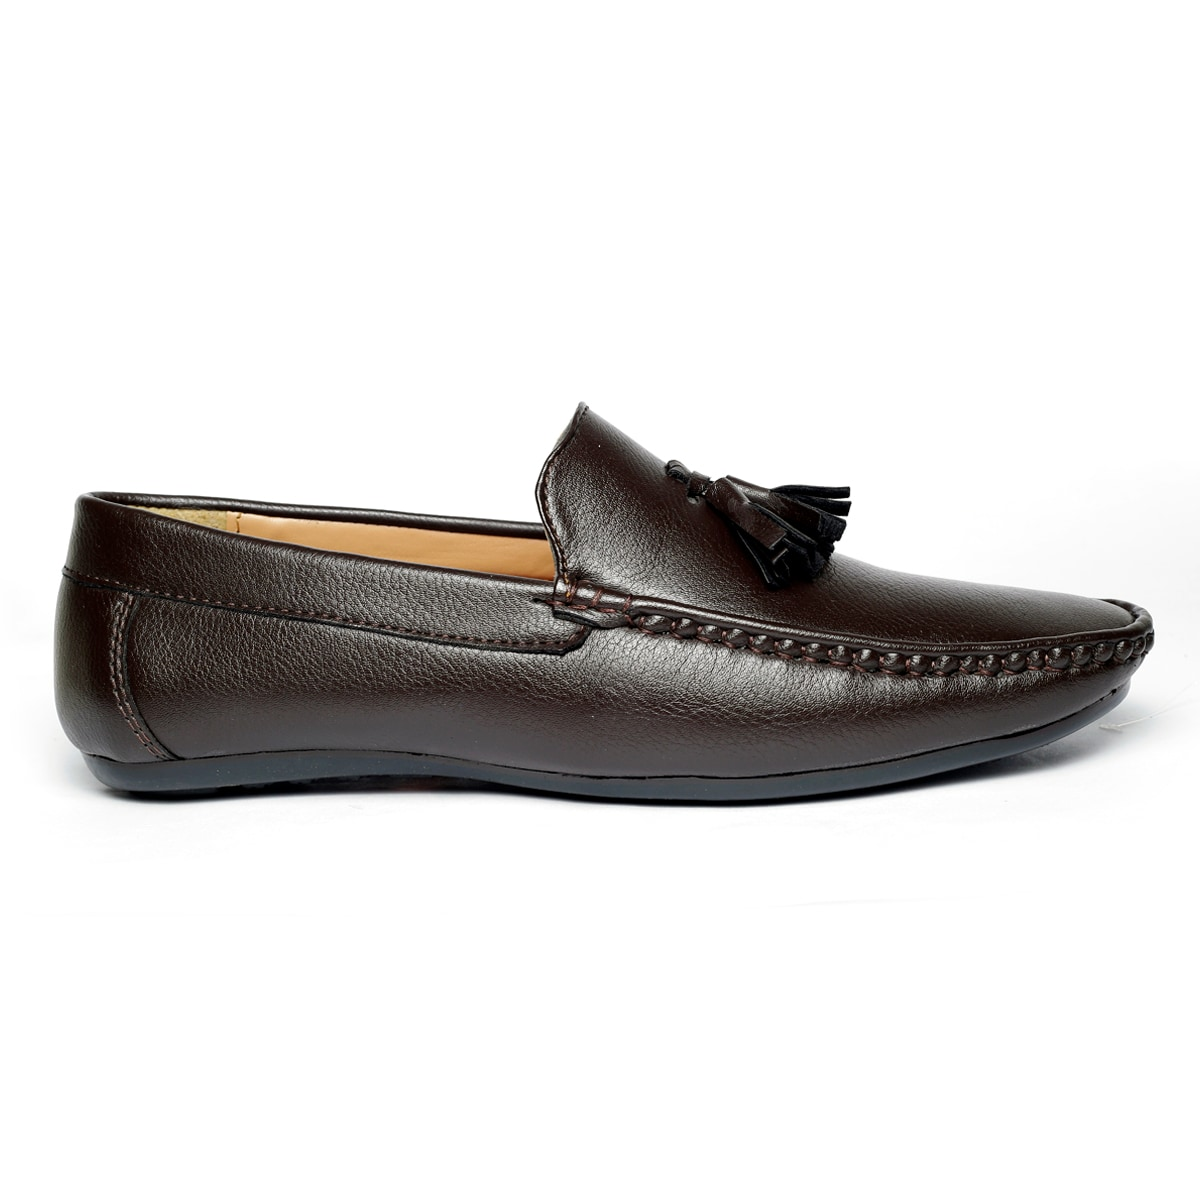 JK PORT COMFORTABLE, FASHIONABLE AND TRENDY LOAFERS JKPLF057BRN (BROWN,6-10,8 PAIR)